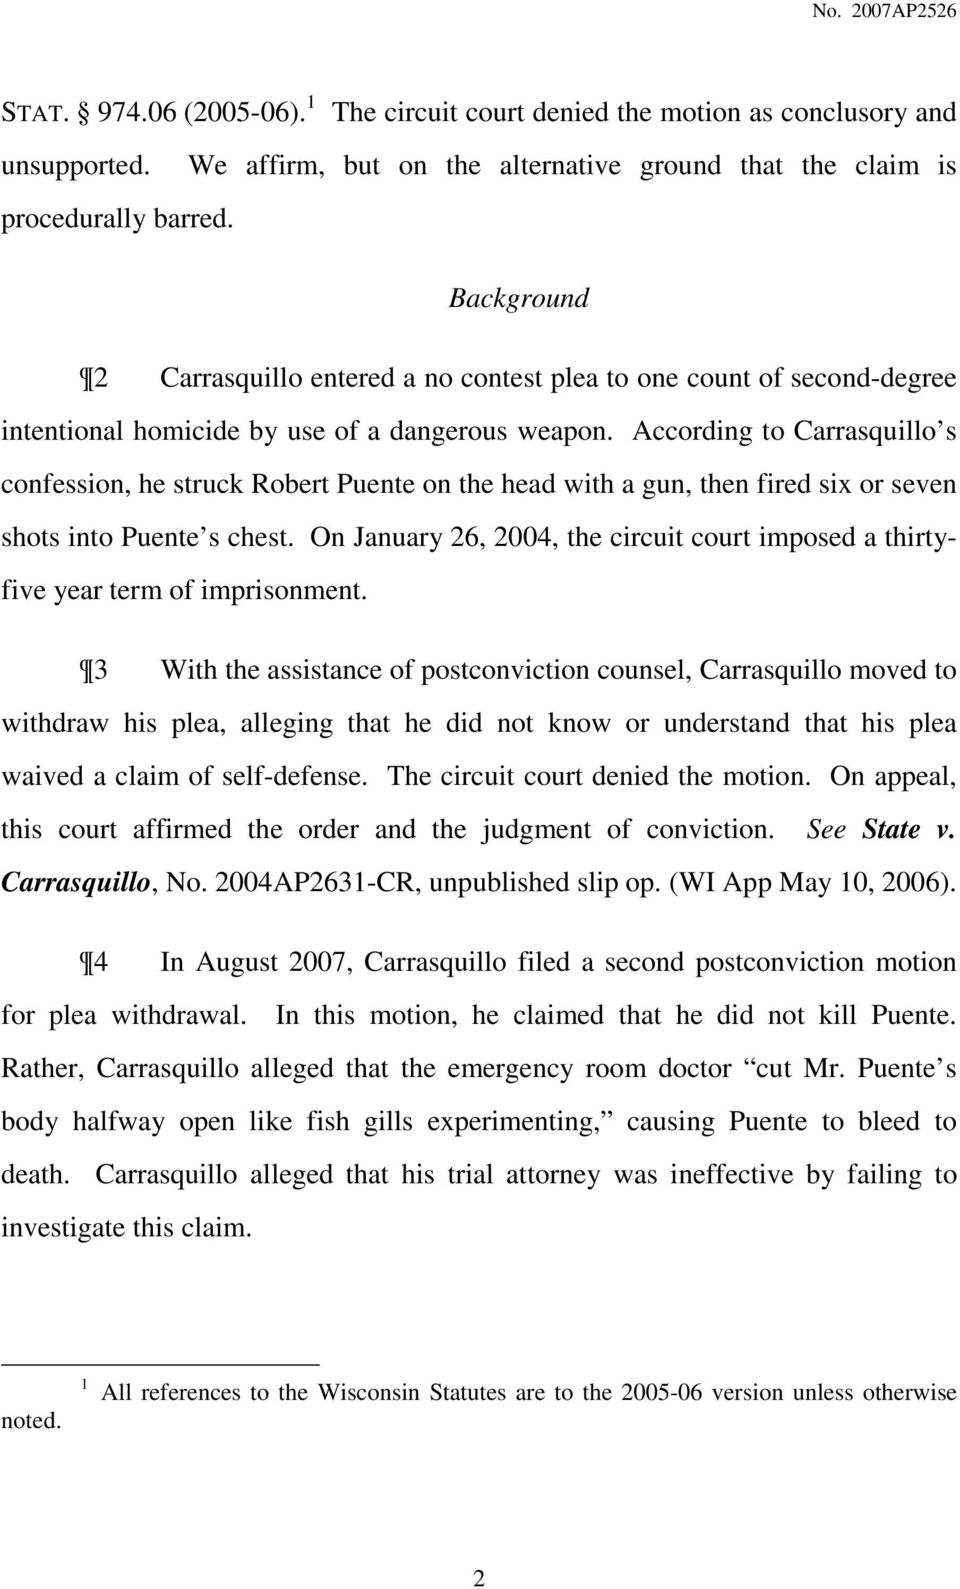 According to Carrasquillo s confession, he struck Robert Puente on the head with a gun, then fired six or seven shots into Puente s chest.